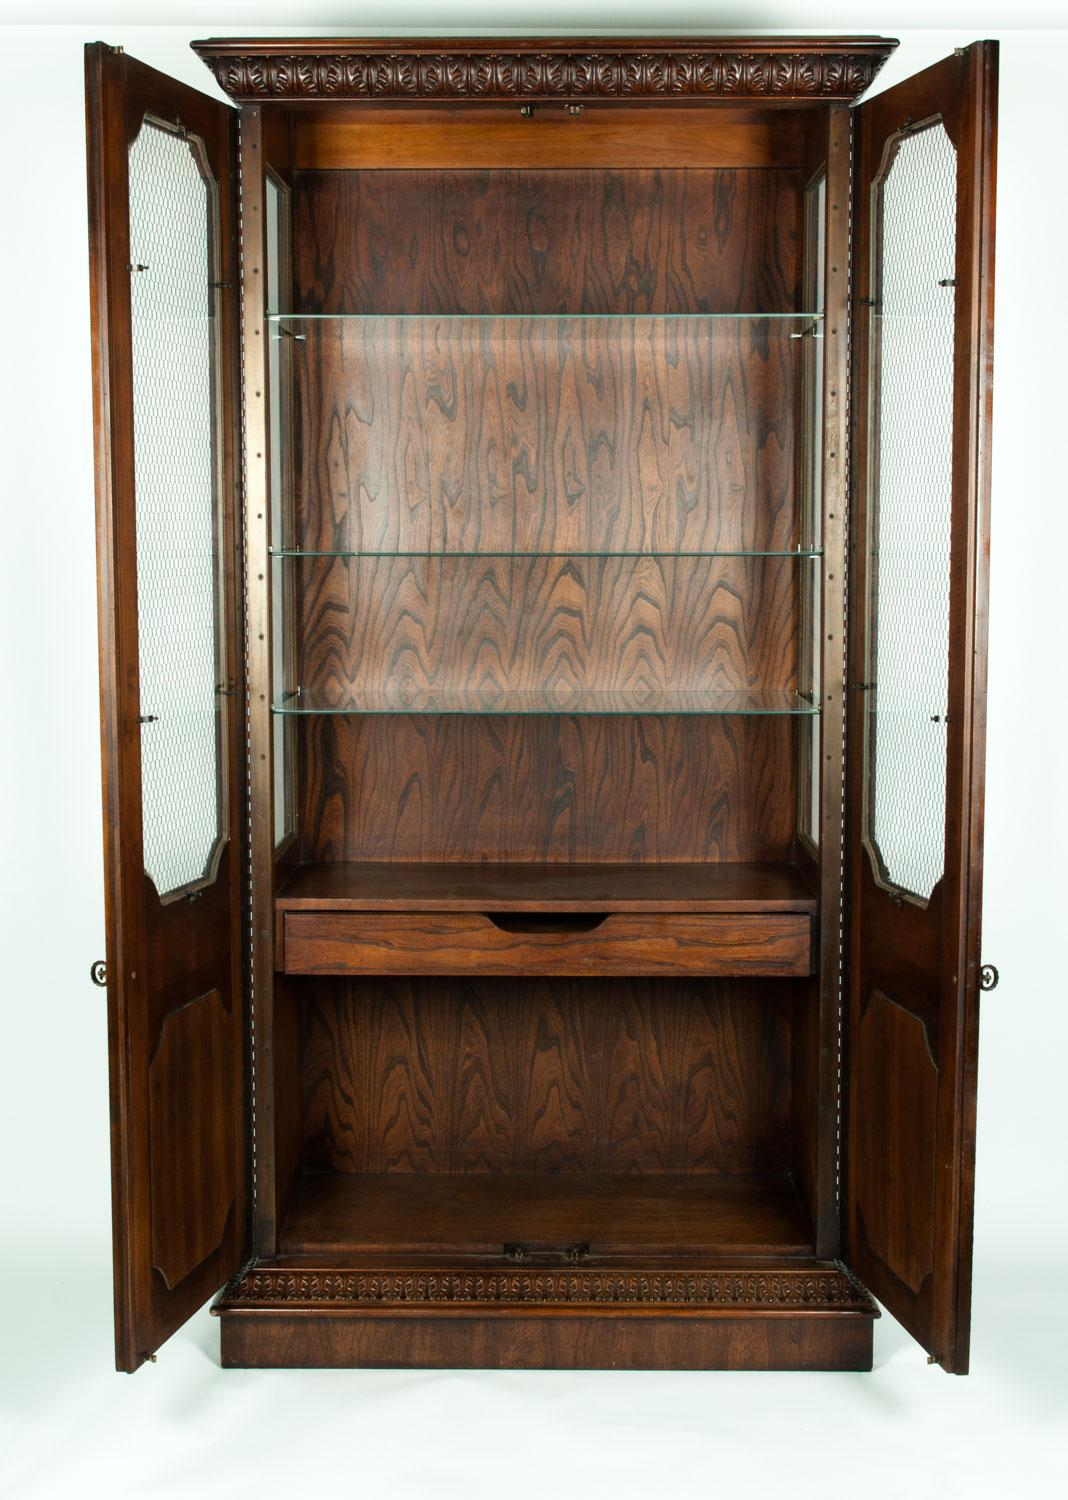 Vintage Vitrine Vintage Study Room Or Bookcase Vitrine Display Cabinet